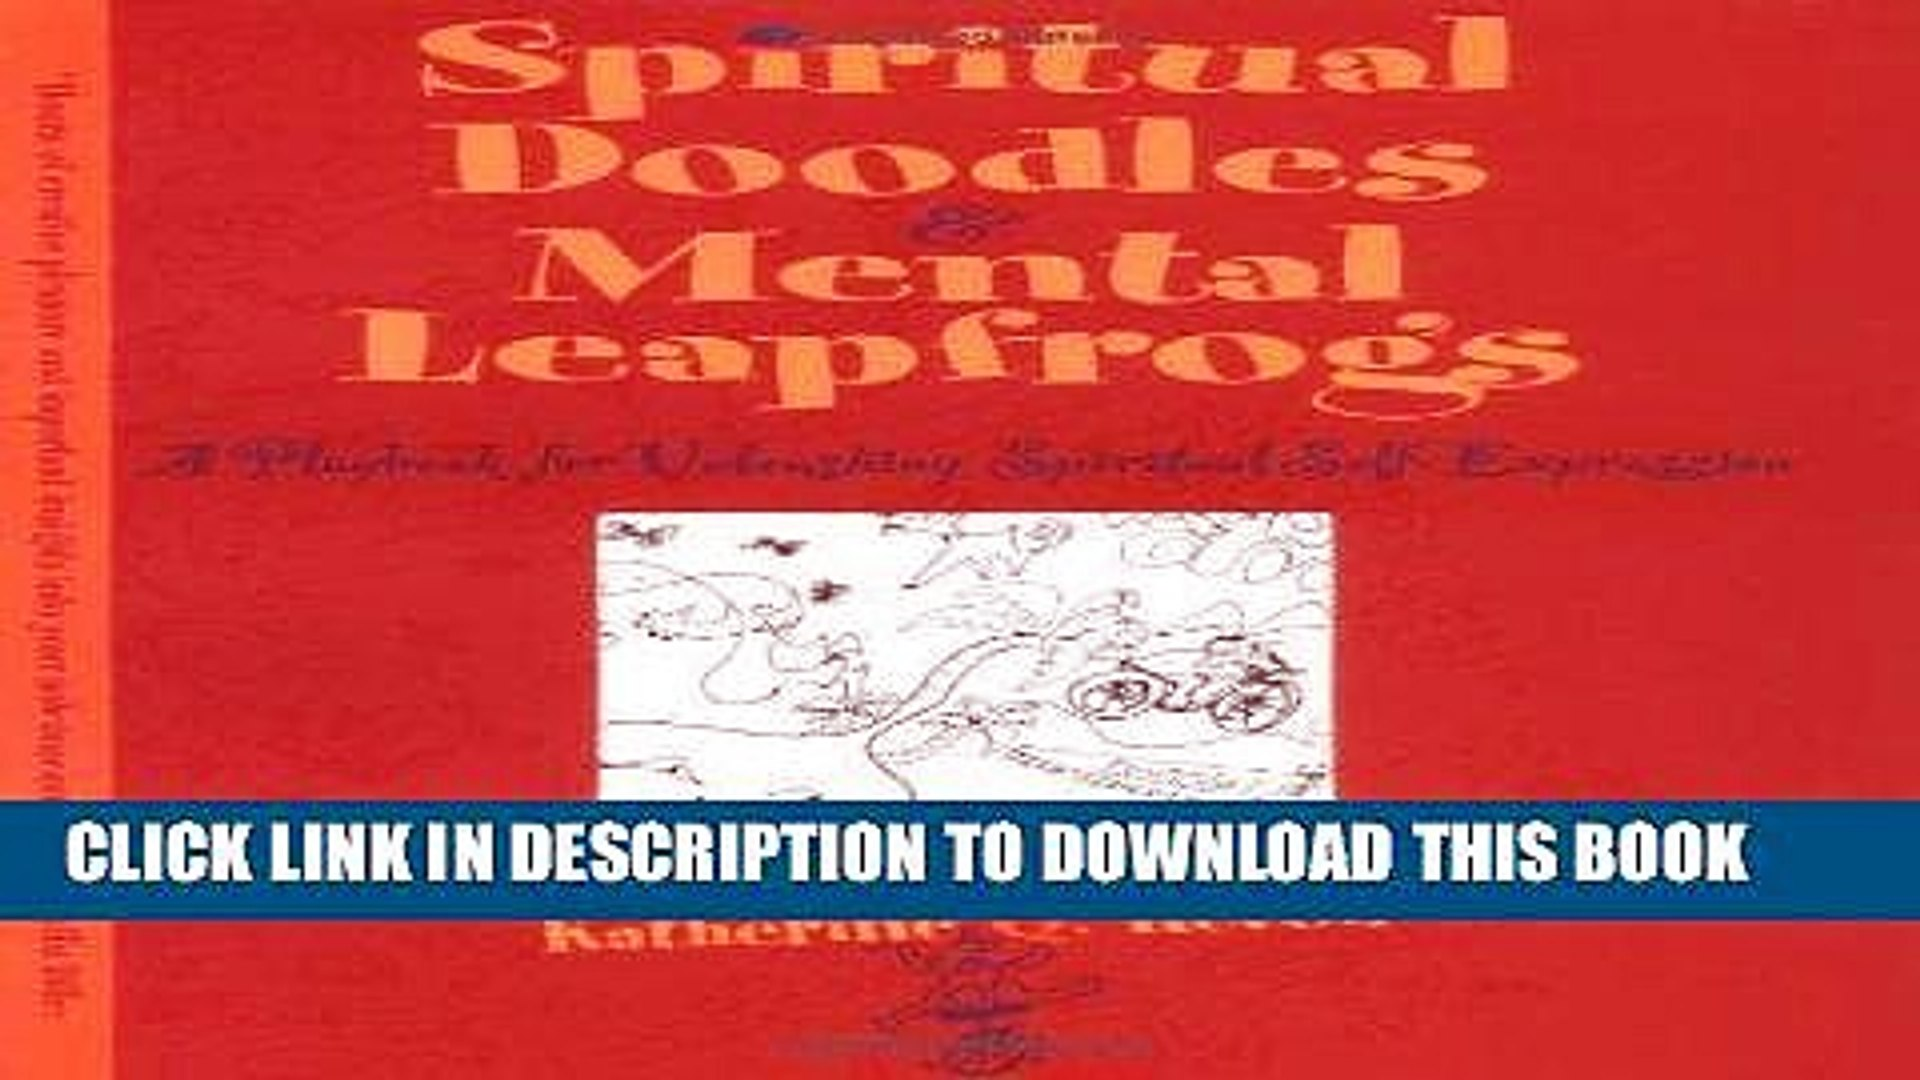 Best Seller Spiritual Doodles and Mental Leapfrogs: Playbook for Unleashing Spiritual Self